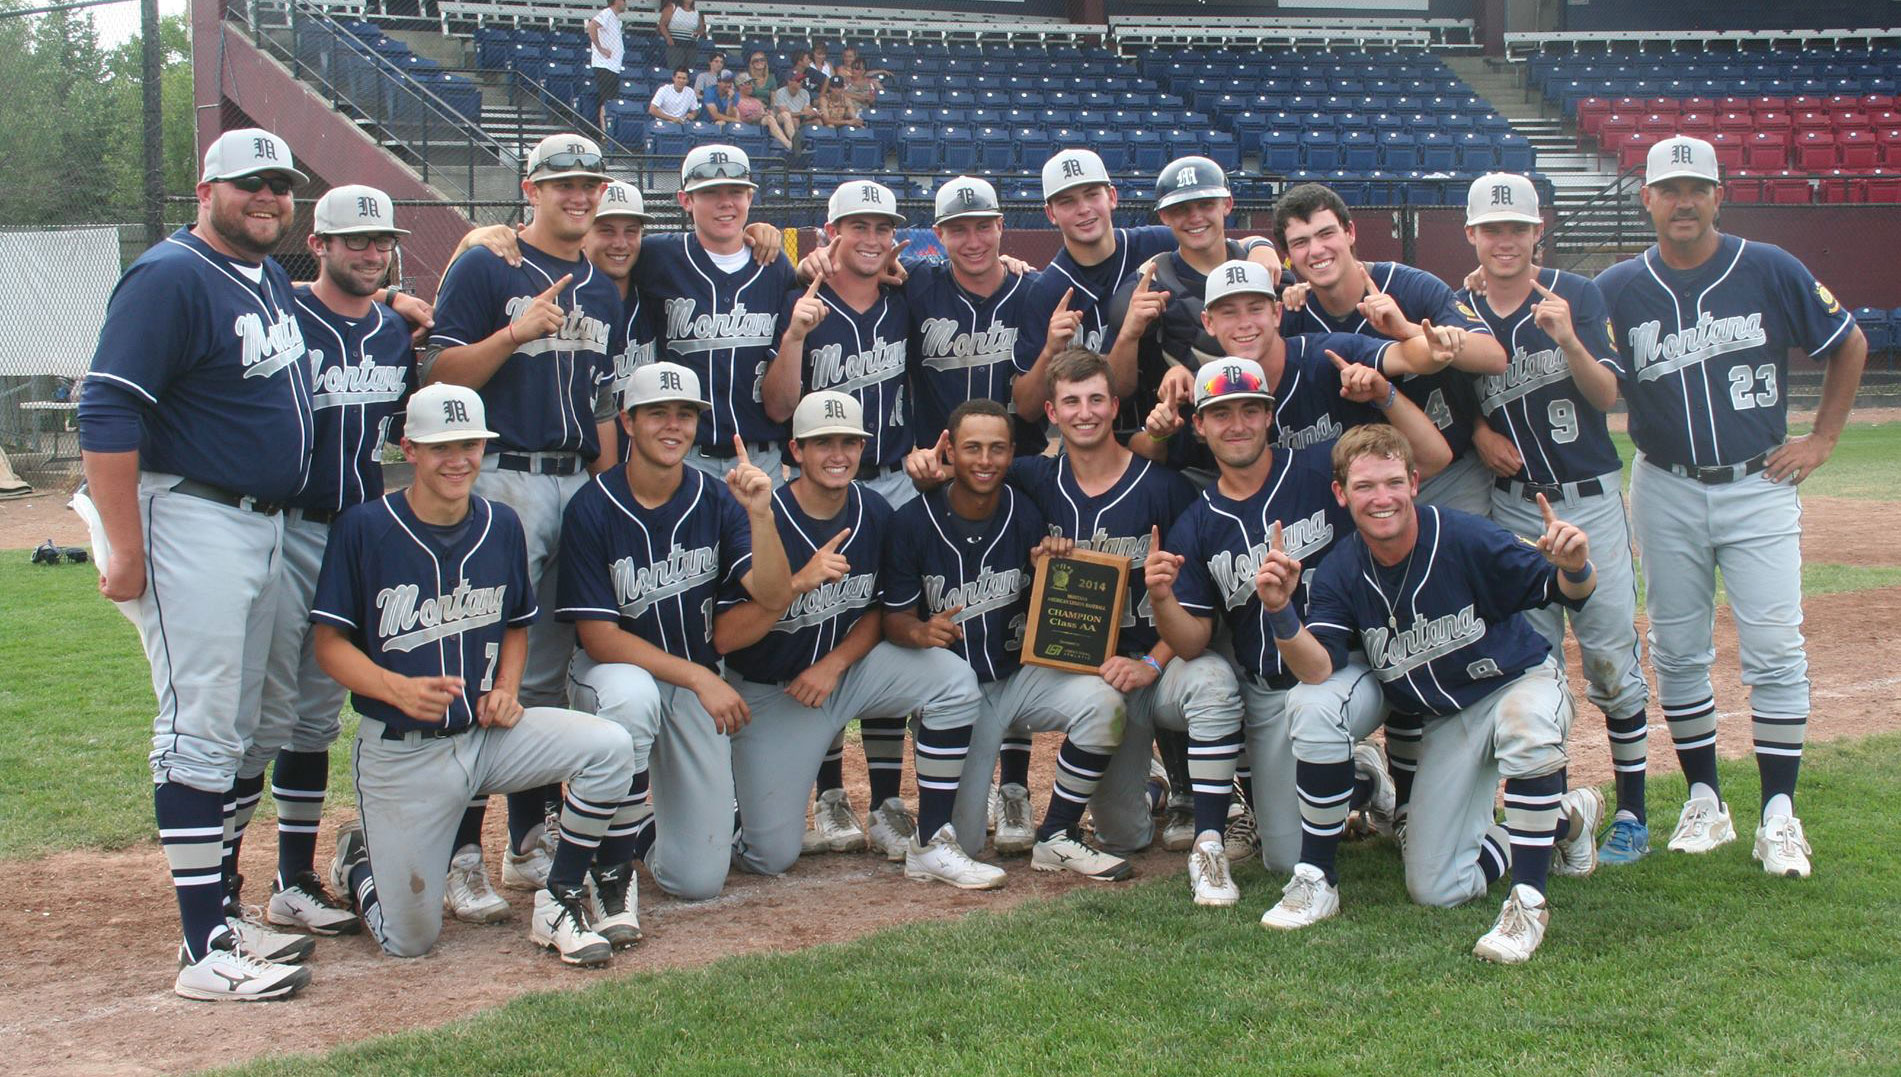 2014-state-champs